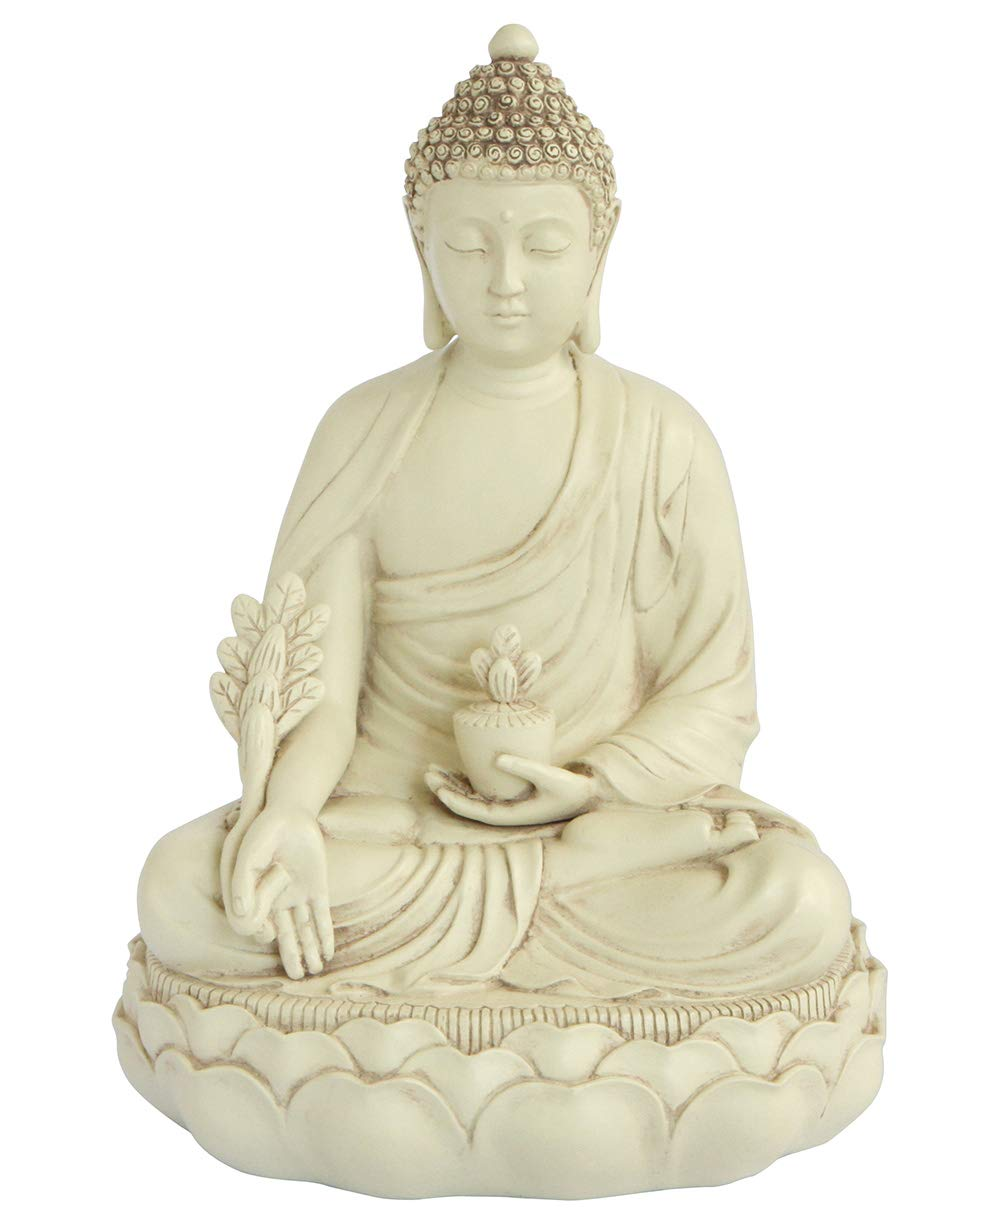 Buddha Groove Healing Medicine Buddha Statue with Elegant Off-White Finish and Made of Cast Stone in a Minimalist Serene Design 11.5 Inches Tall